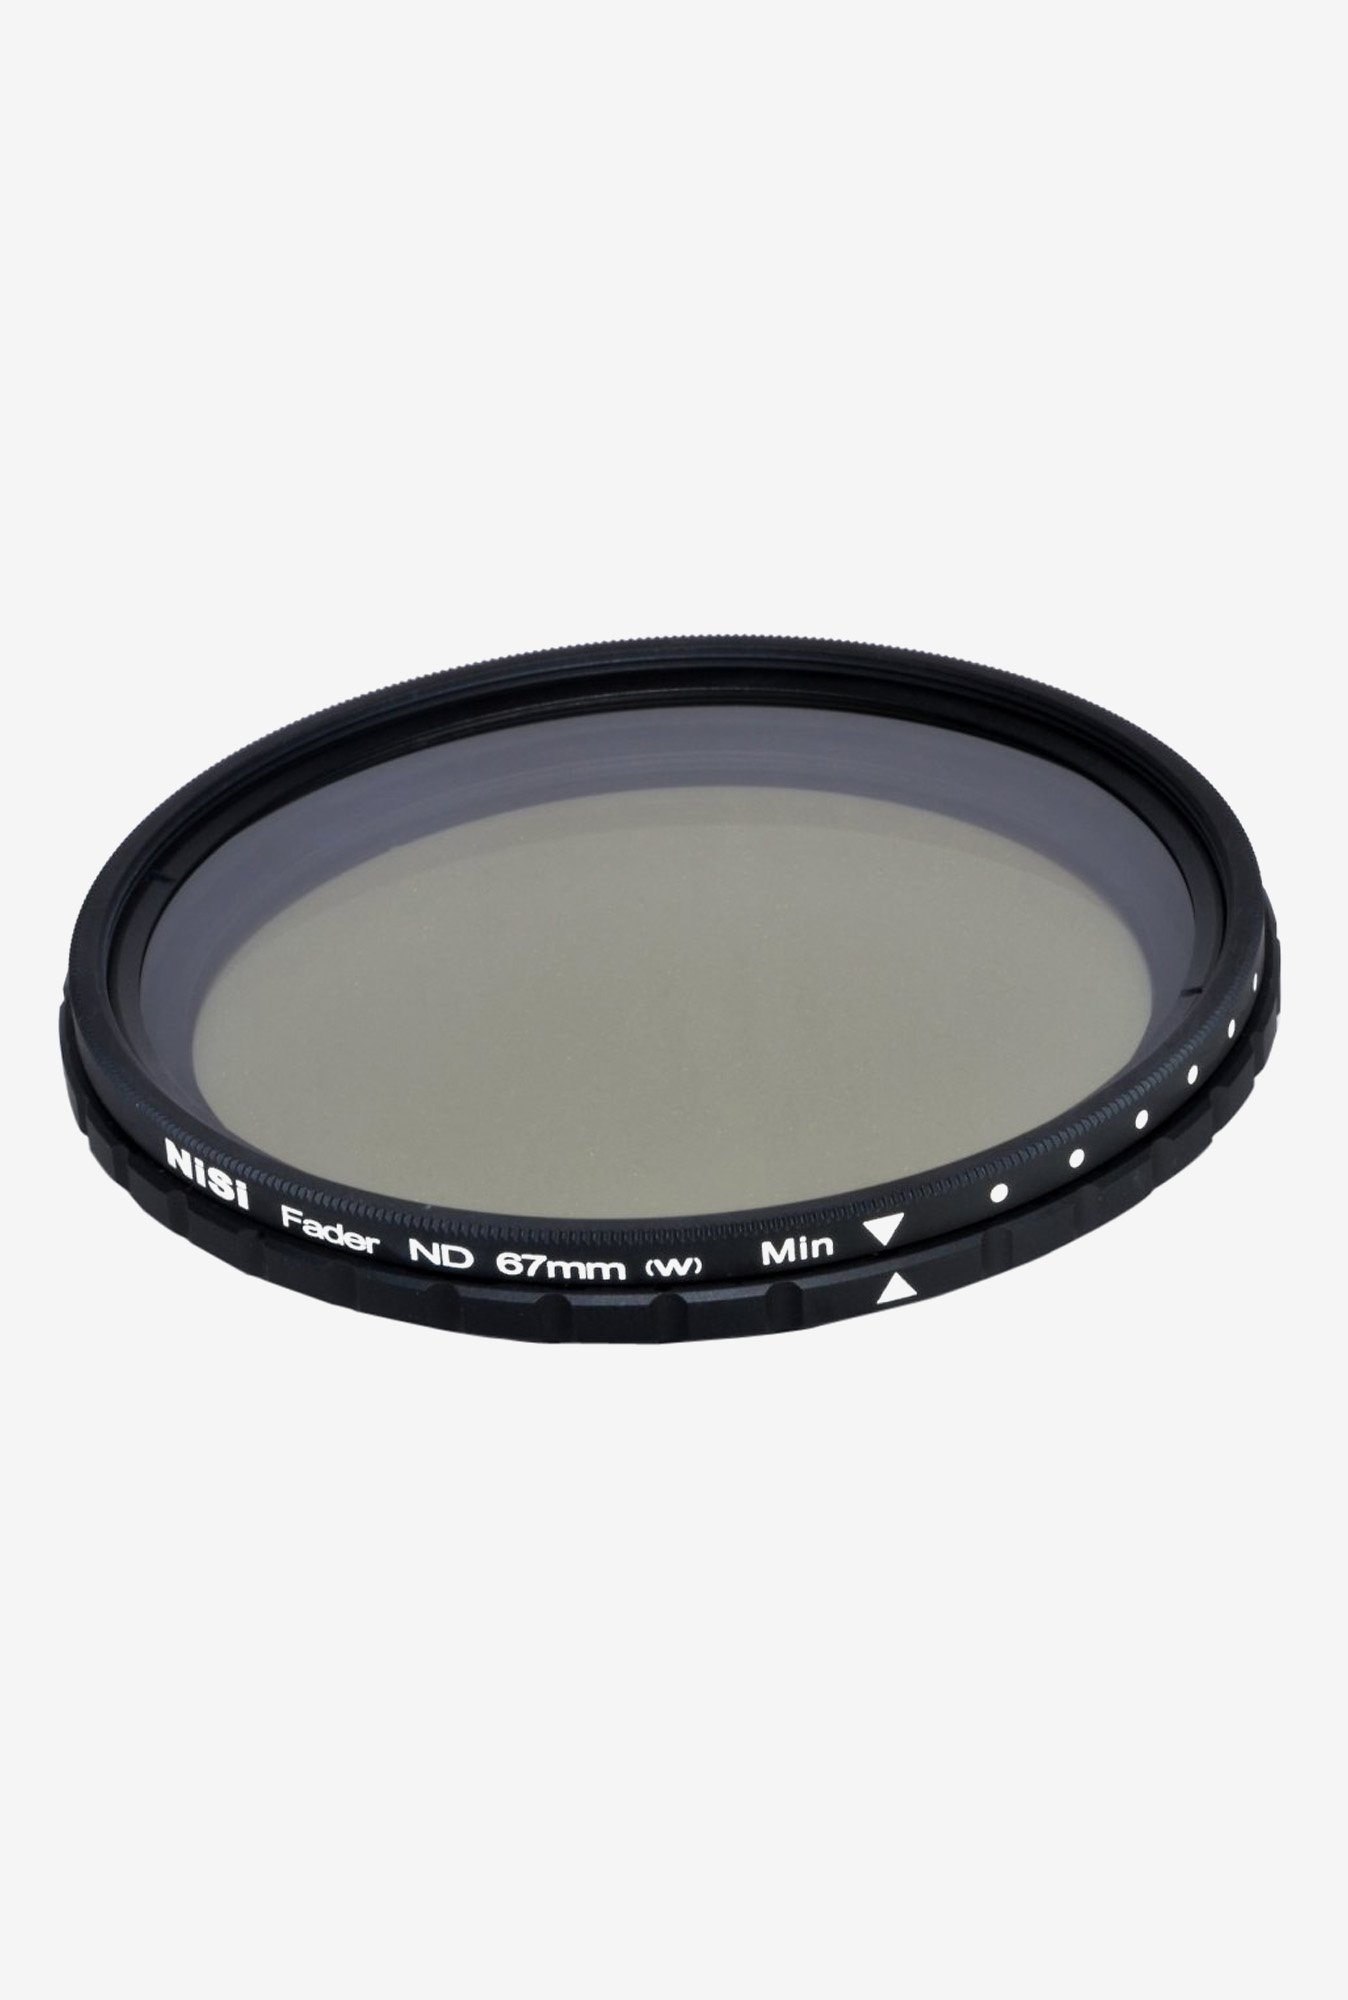 Nisi ND 2-400 67mm Fader Filter Black